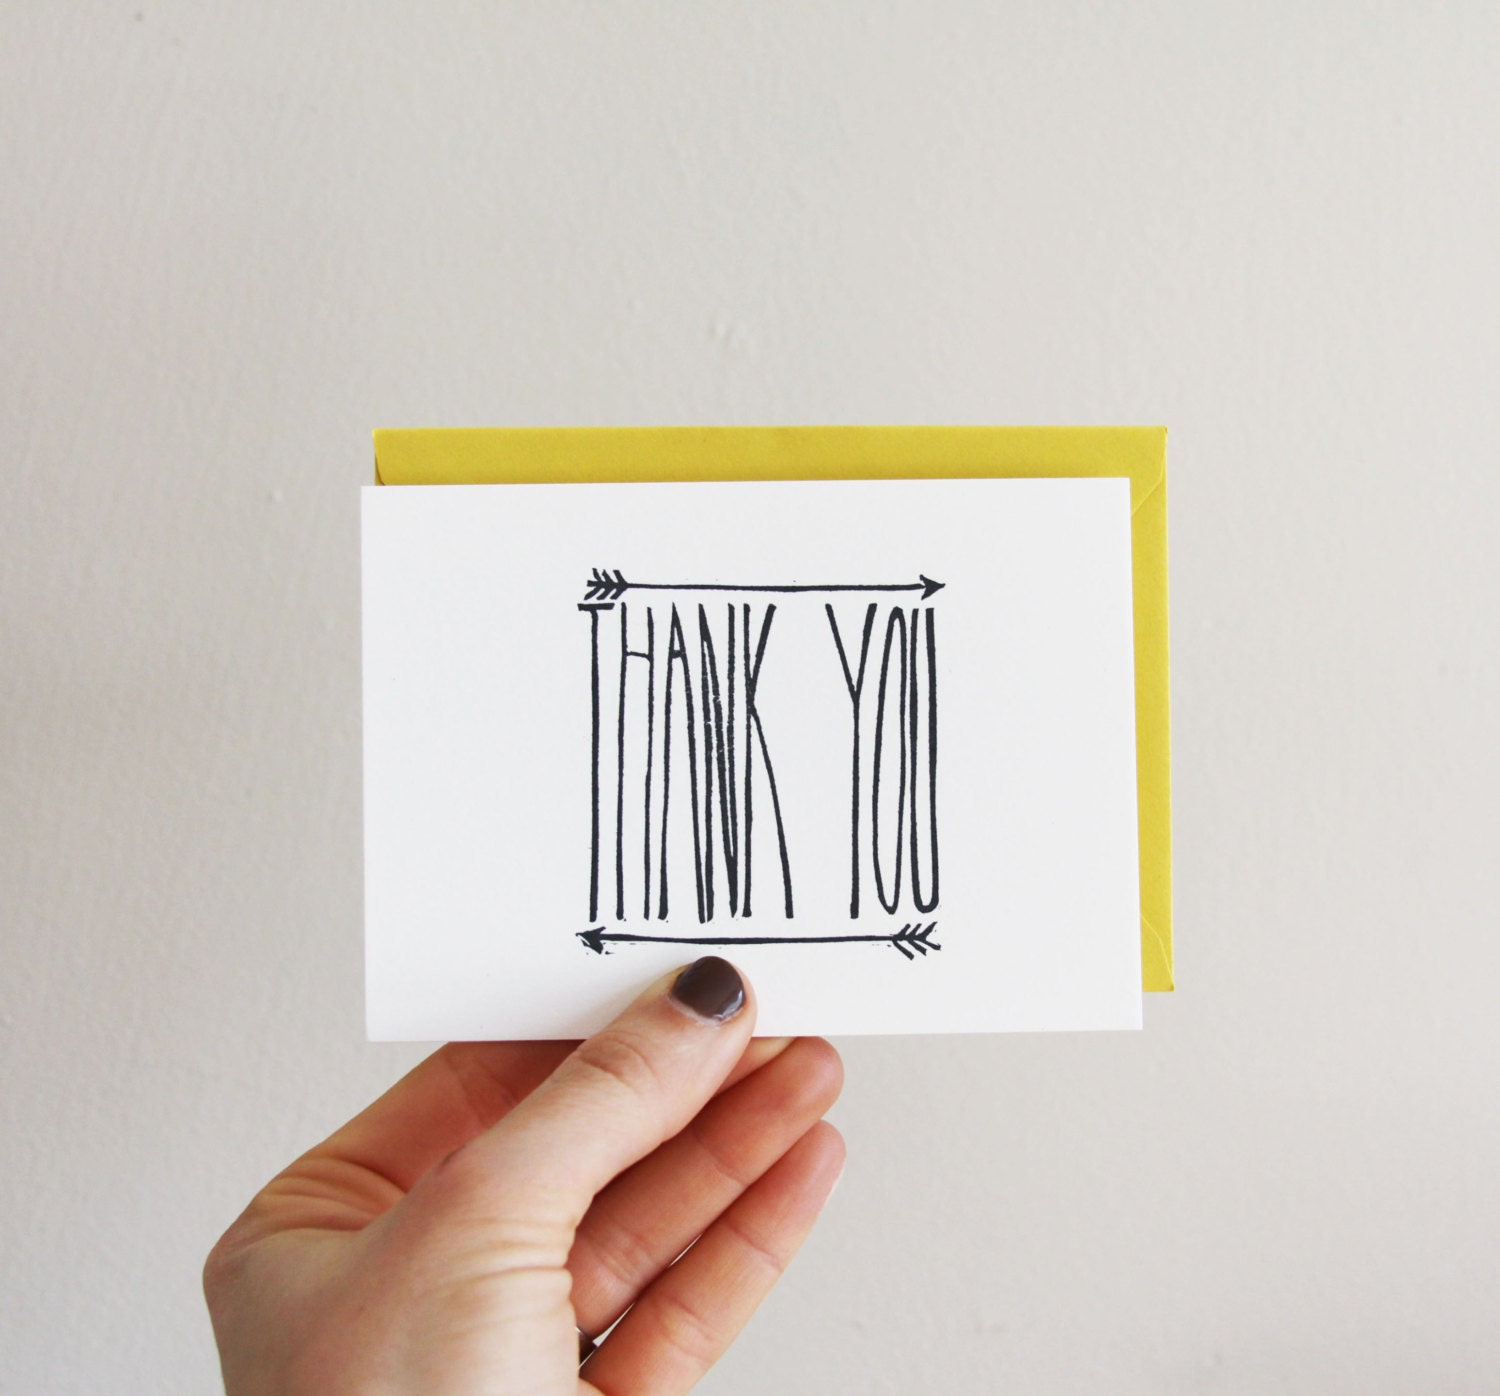 Thank You Arrow card, 3.5x5 - nativebear